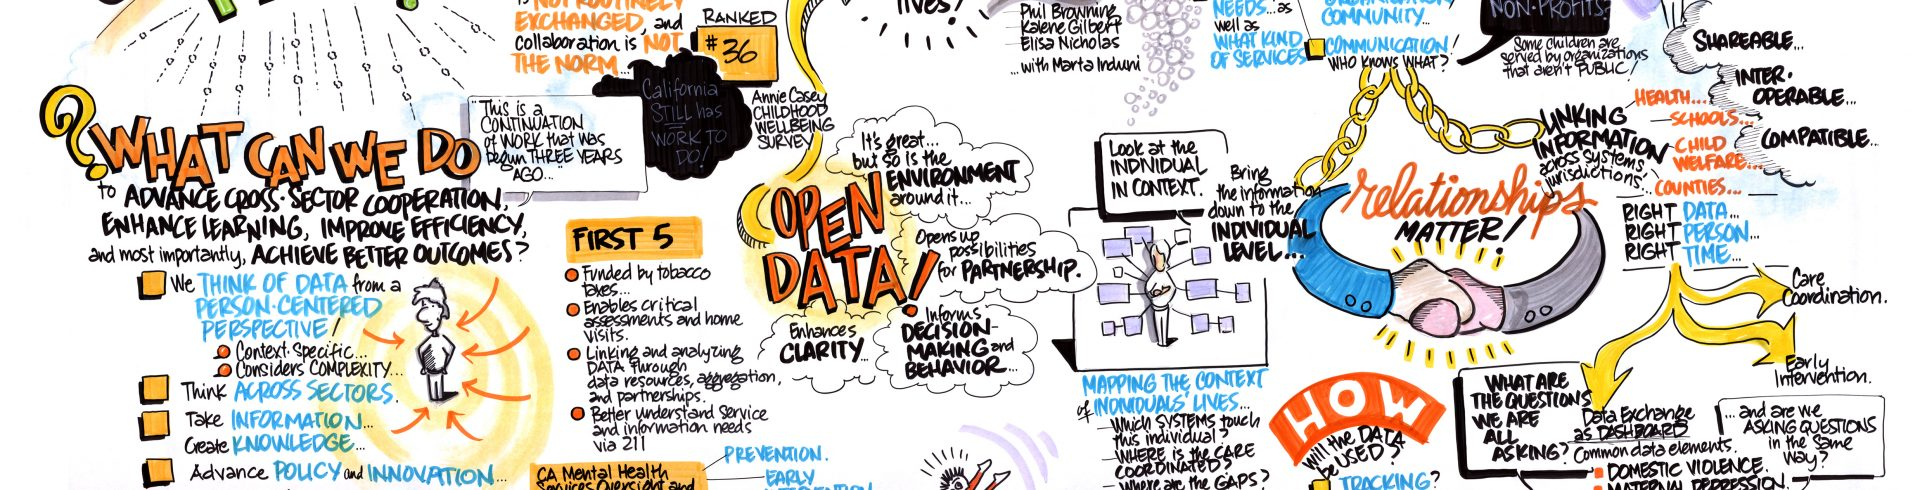 SOCI Open DataFest III – What Can We Do To Advance Cross-Sector Cooperation, Enhance Learning, Improve Efficiency, and Achieve Better Outcomes?